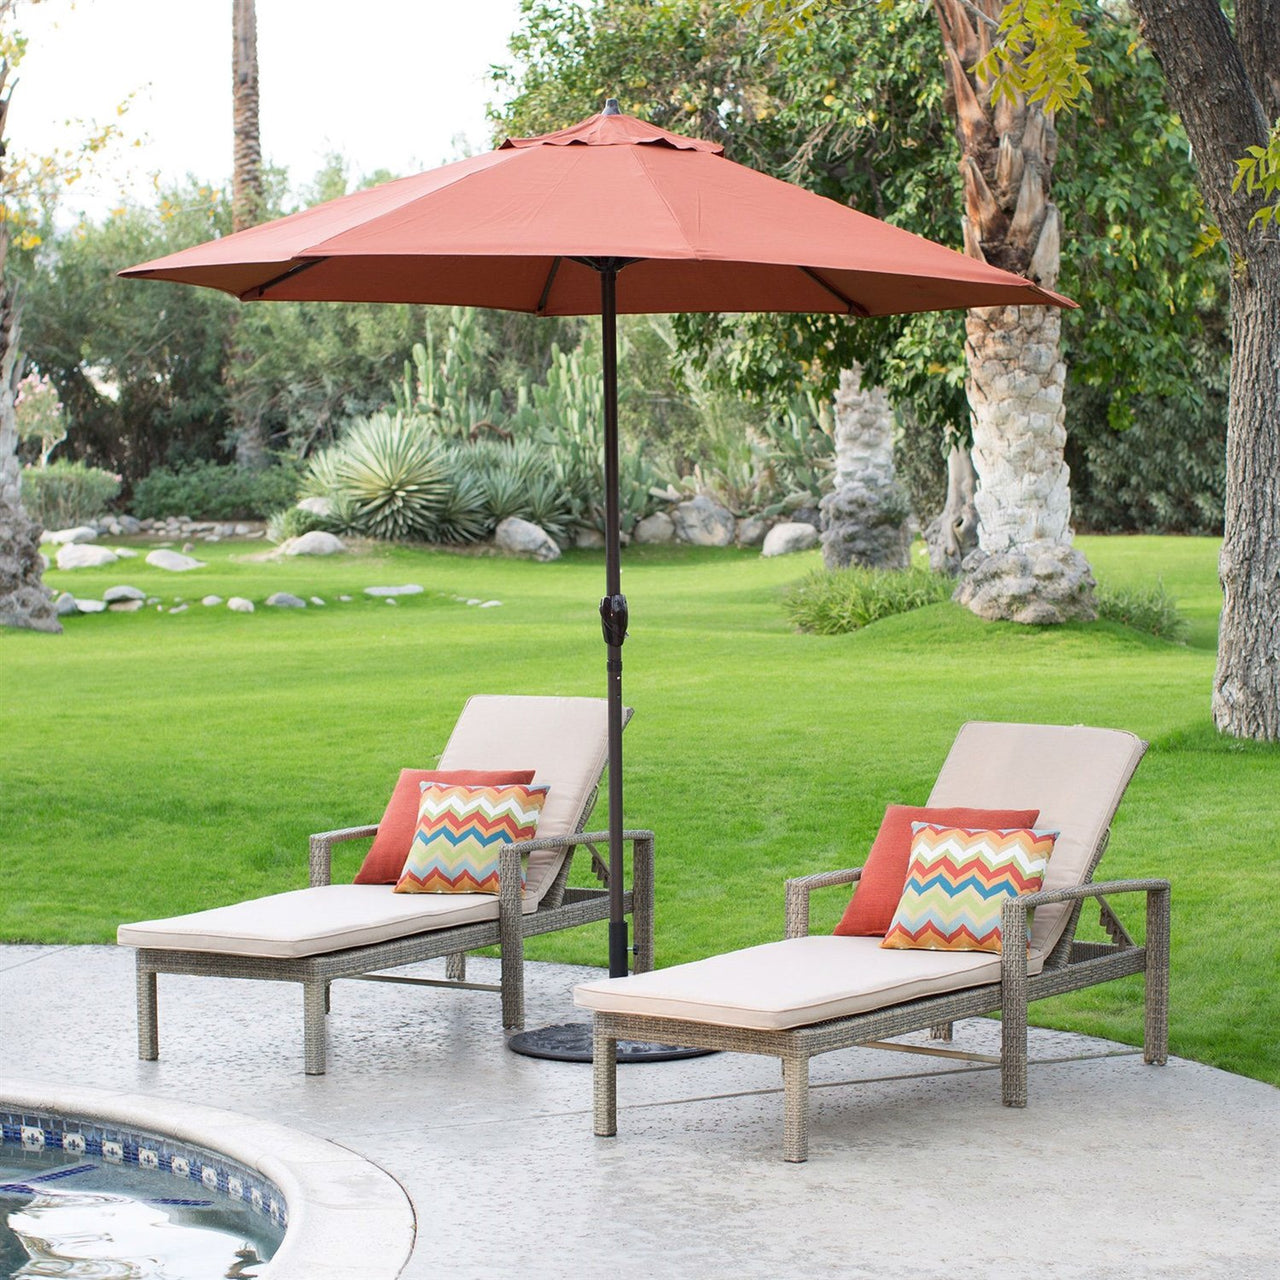 9-FT Patio Umbrella In Terracotta With Metal Pole & Tilt Mechanism